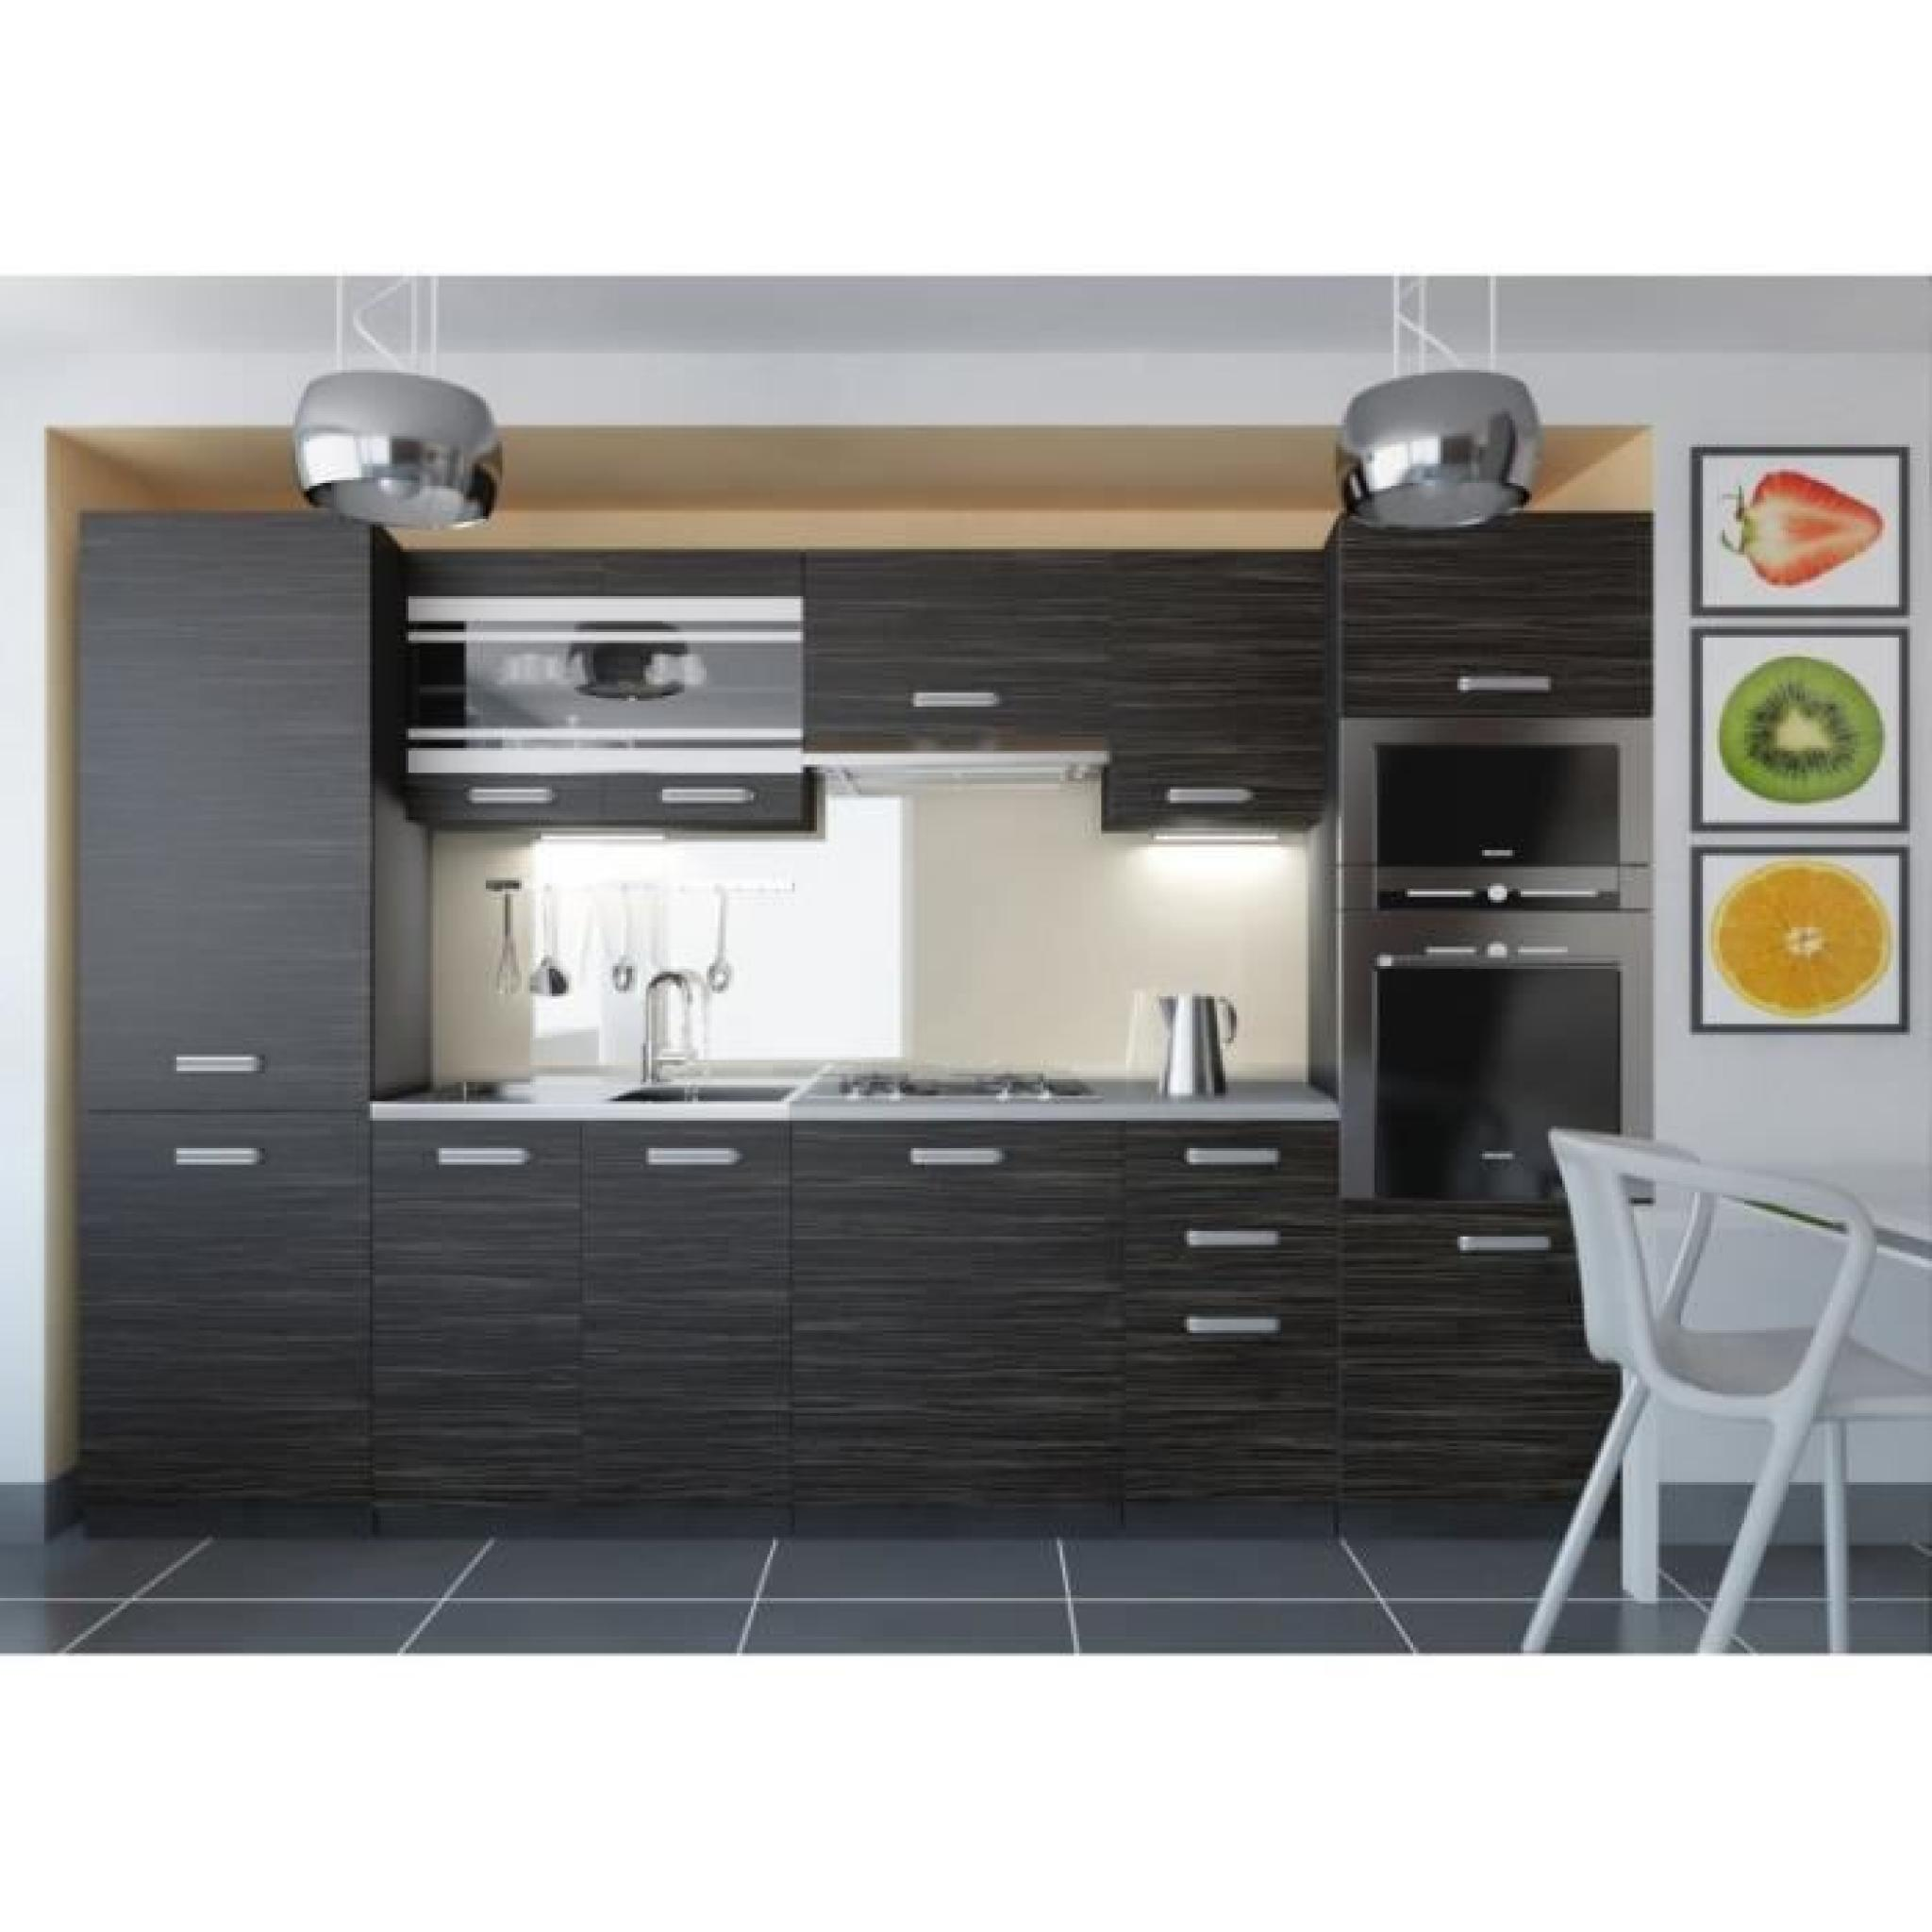 justhome torino 5 led cuisine quip e compl te 300 cm mod le de poign e 1 achat vente cuisine. Black Bedroom Furniture Sets. Home Design Ideas